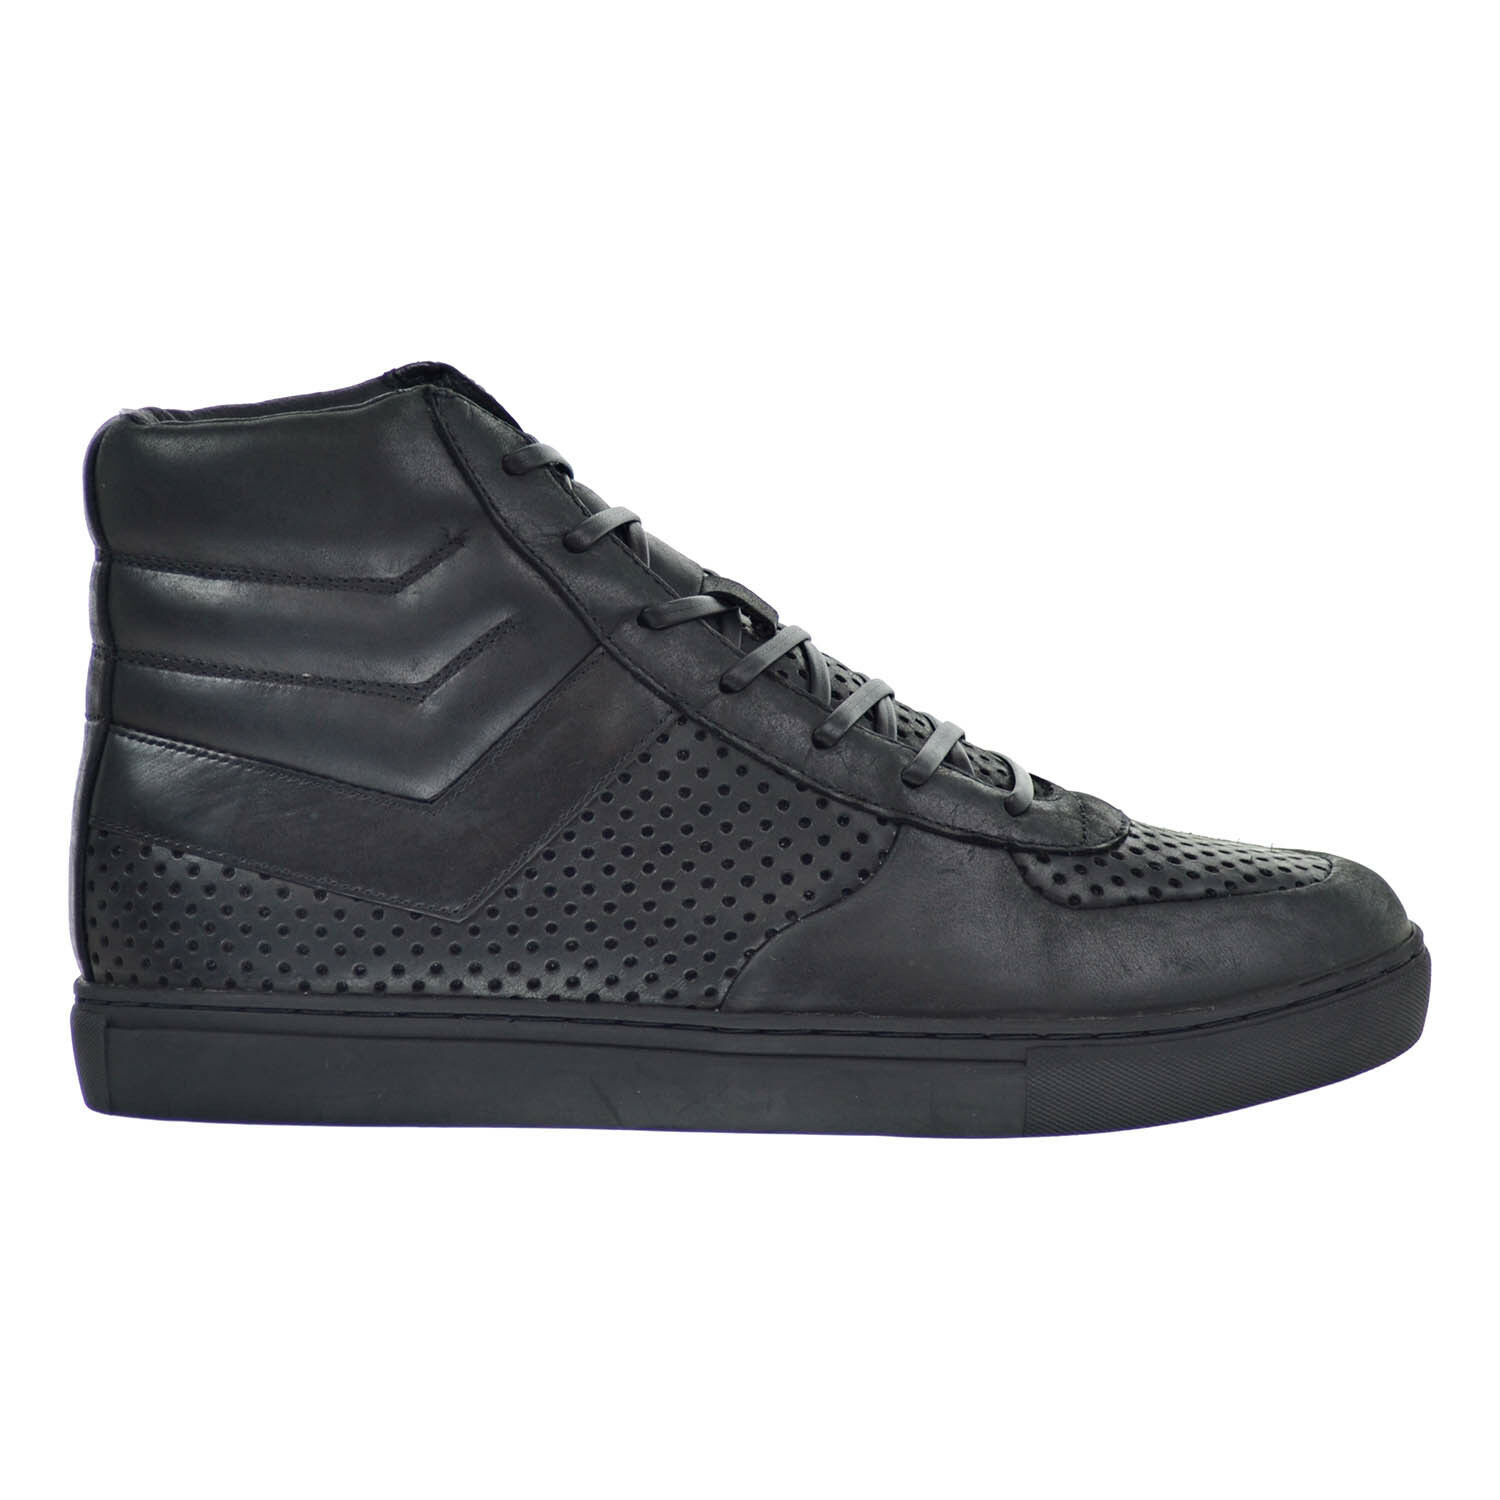 PONY Product Of New York Mercer hommes Chaussures noir Mono Chrome 0710019-a48